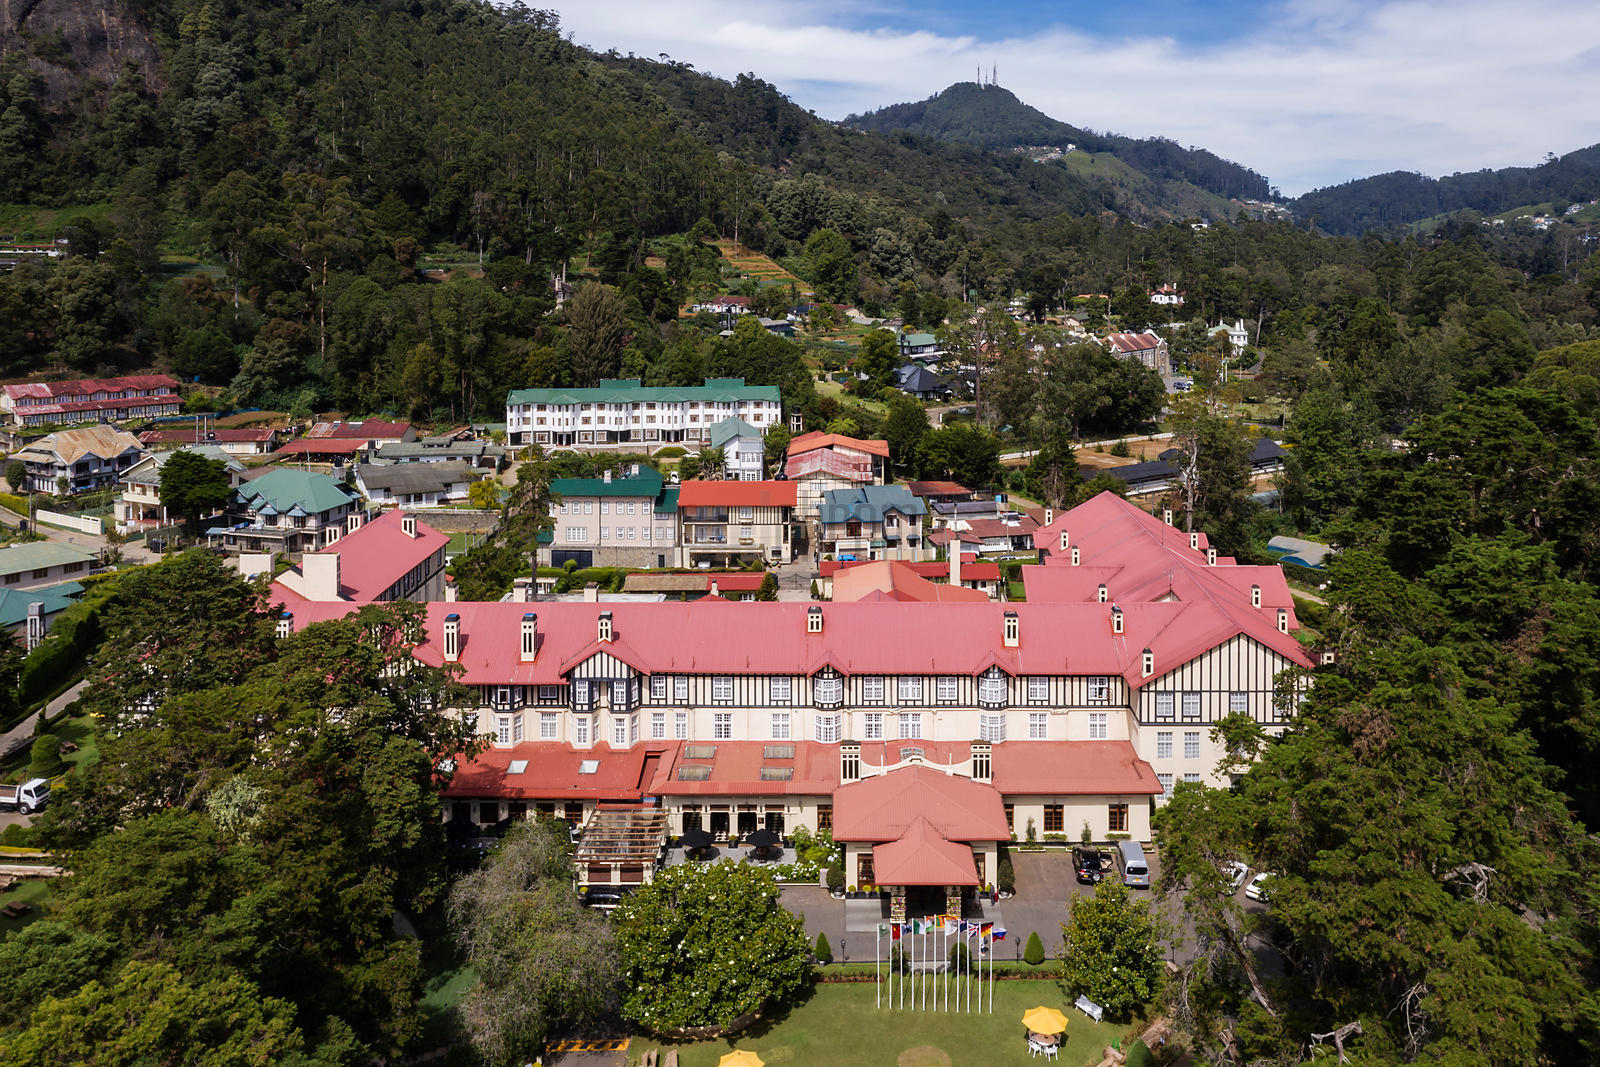 Aerial View of the Grand Hotel